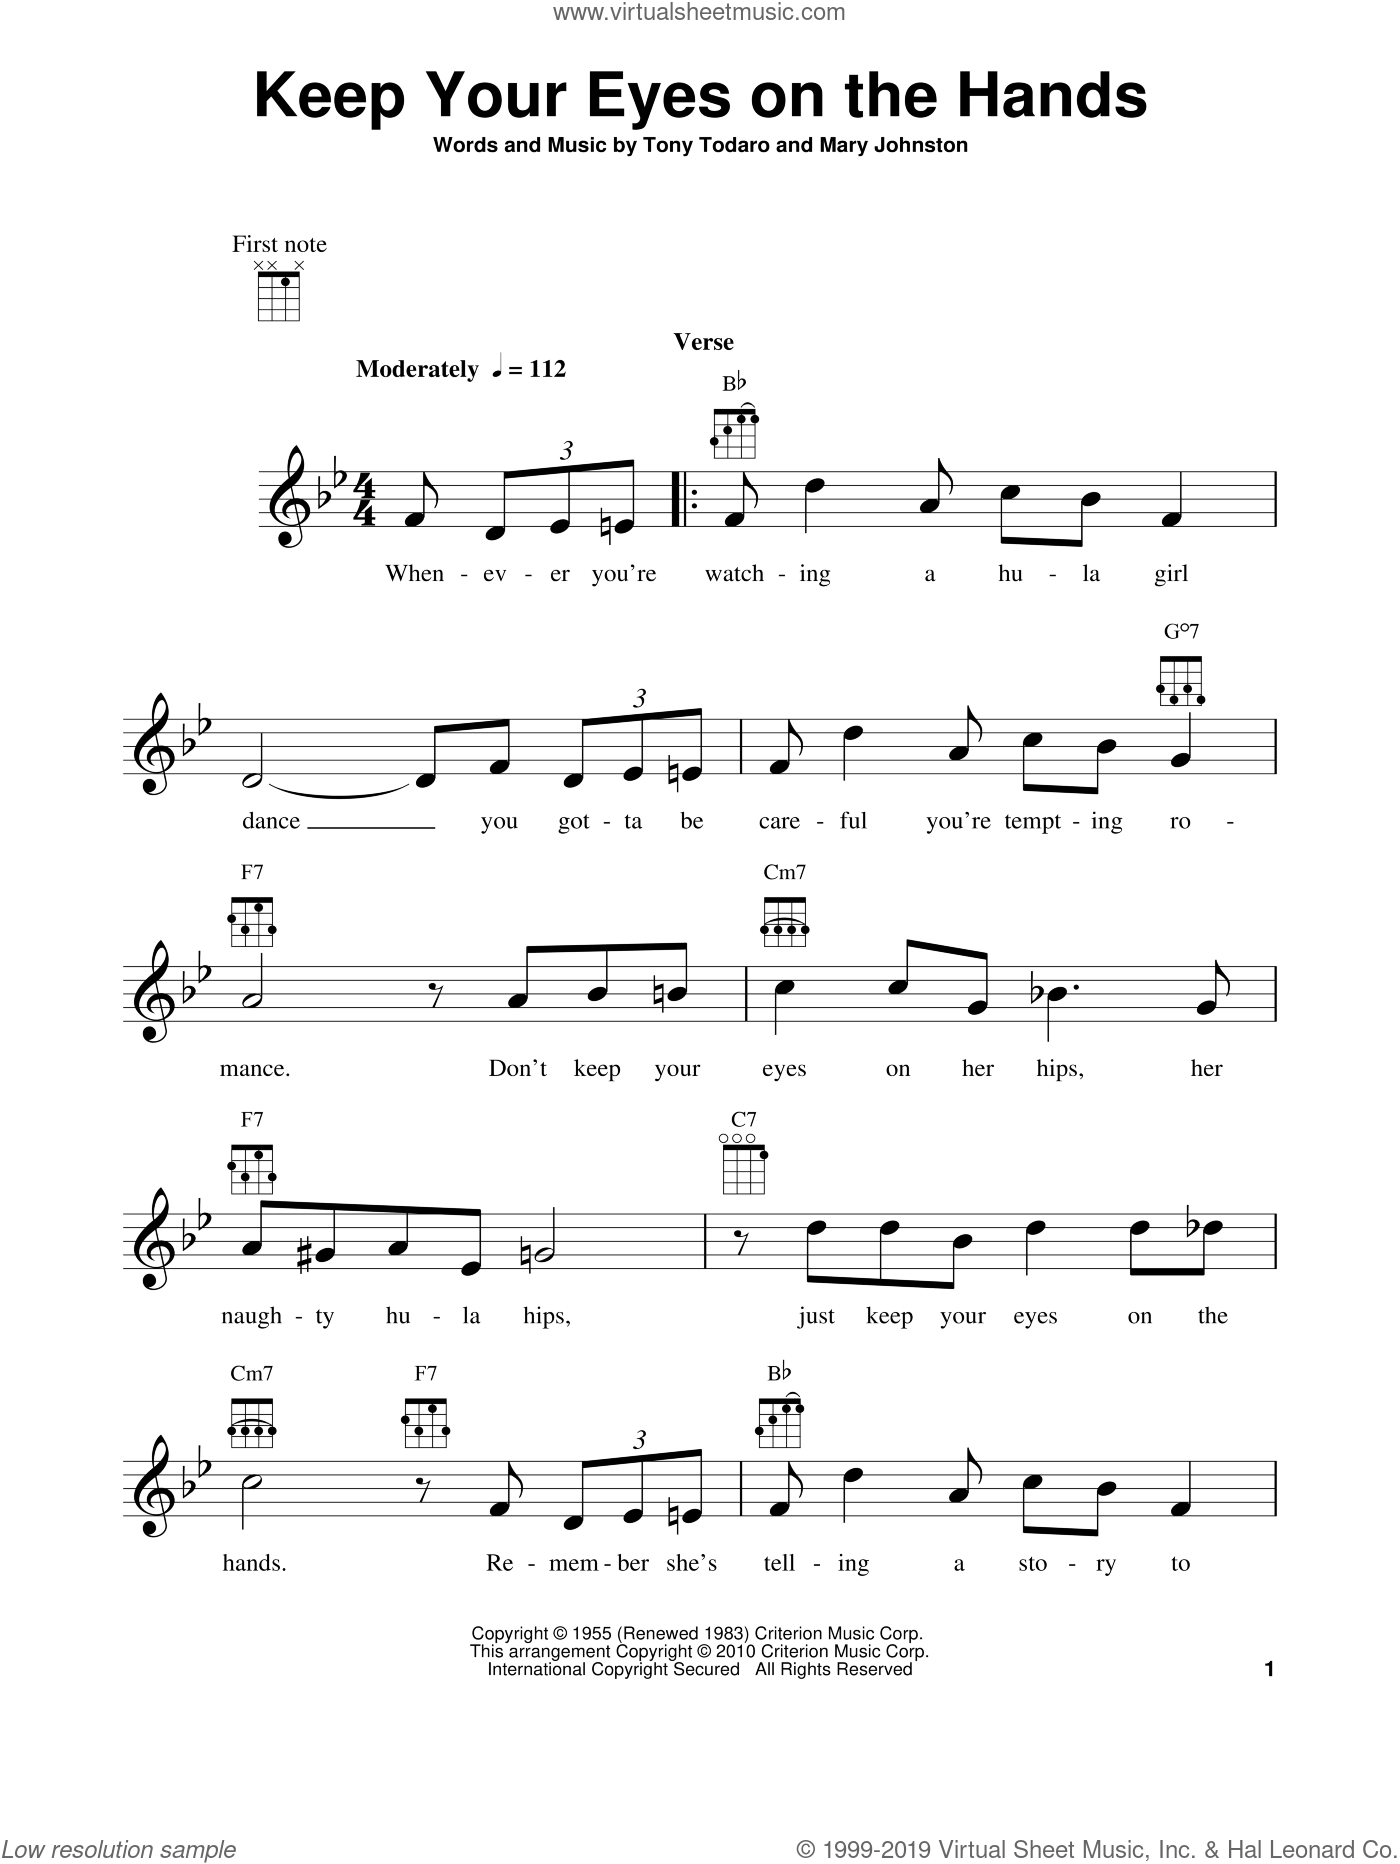 Keep Your Eyes On The Hands sheet music for ukulele by Mary Johnston and Tony Todaro, intermediate skill level